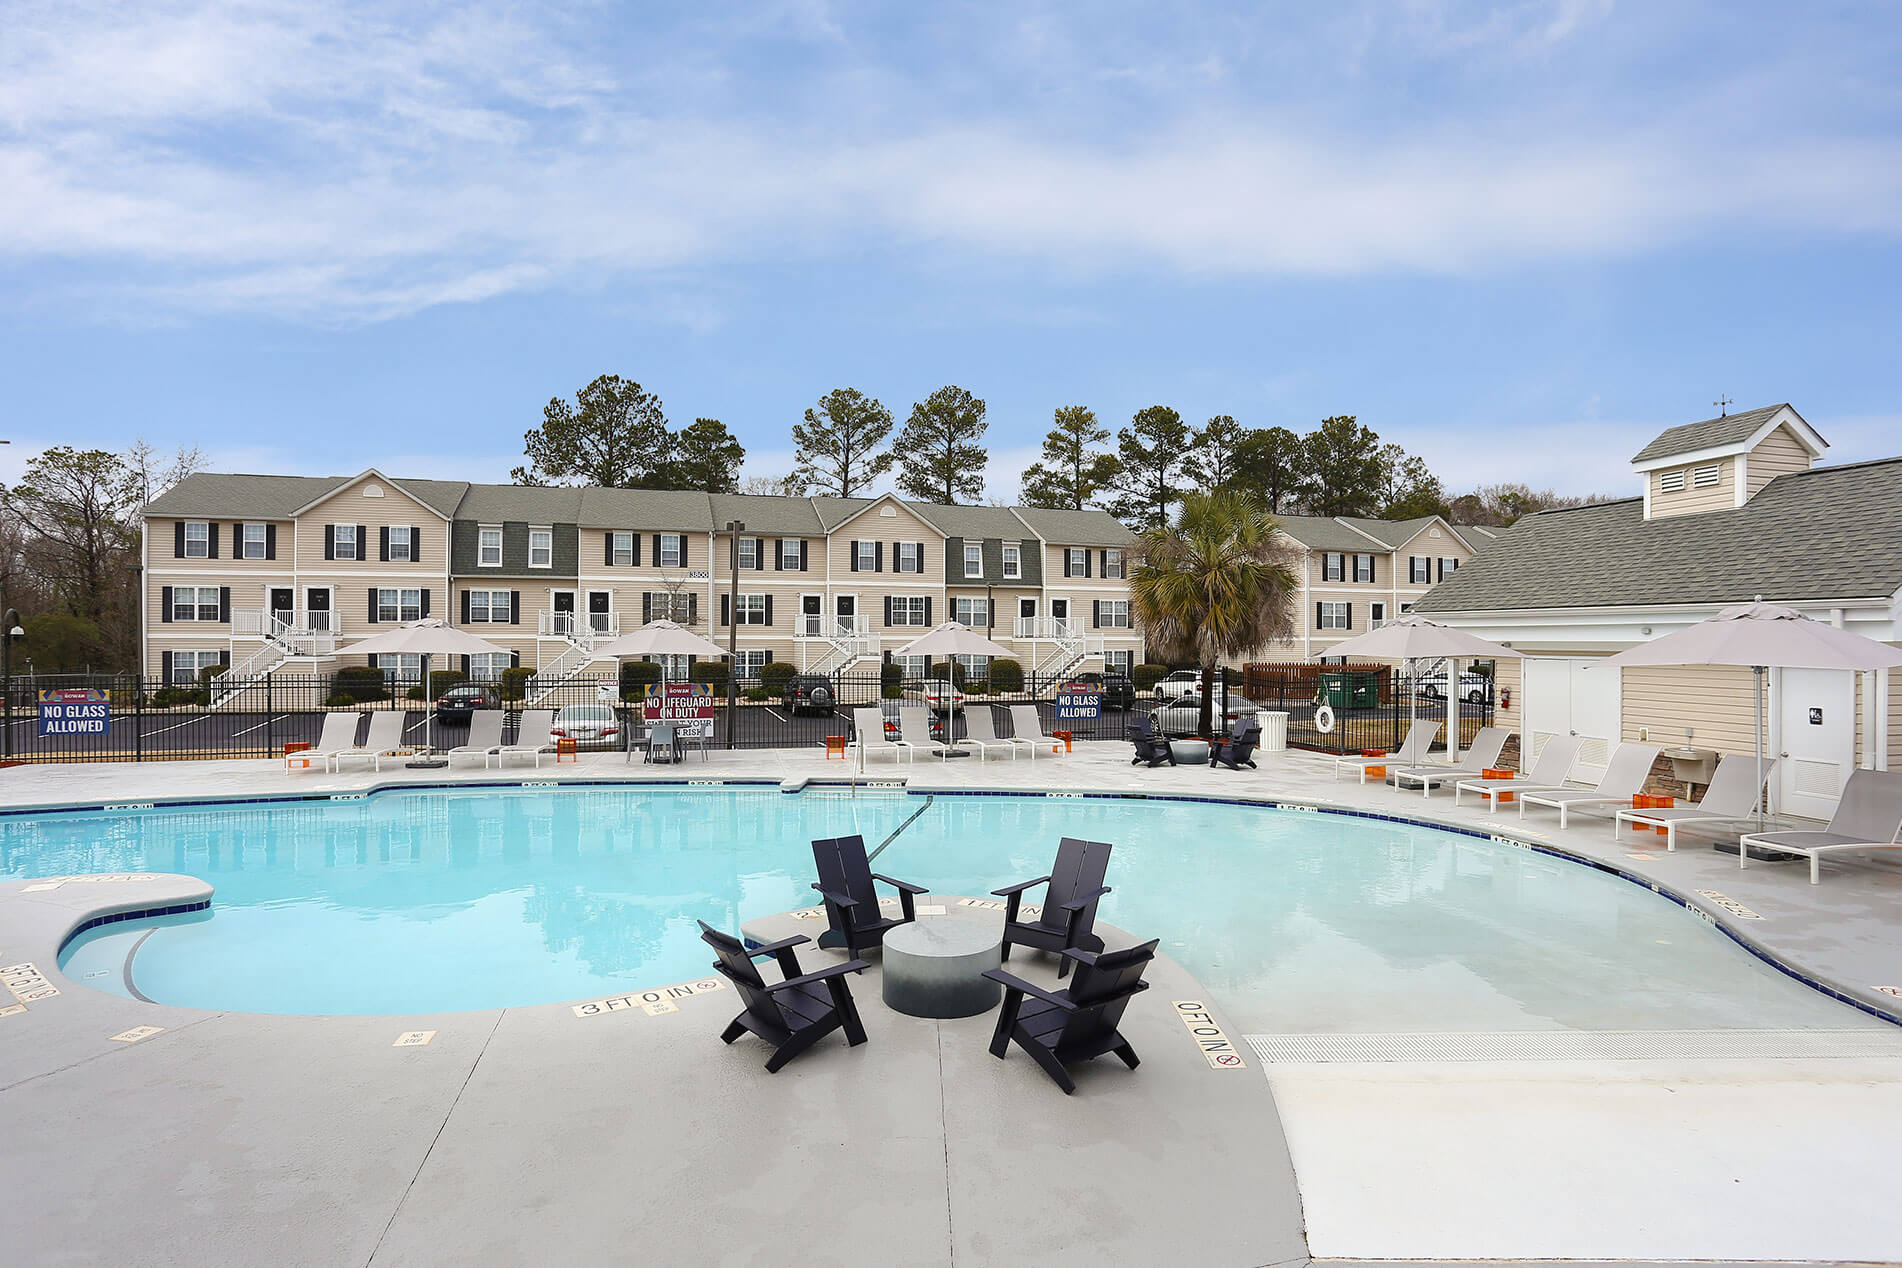 Outdoor Pool With a Table and Chairs at The Rowan Apartments